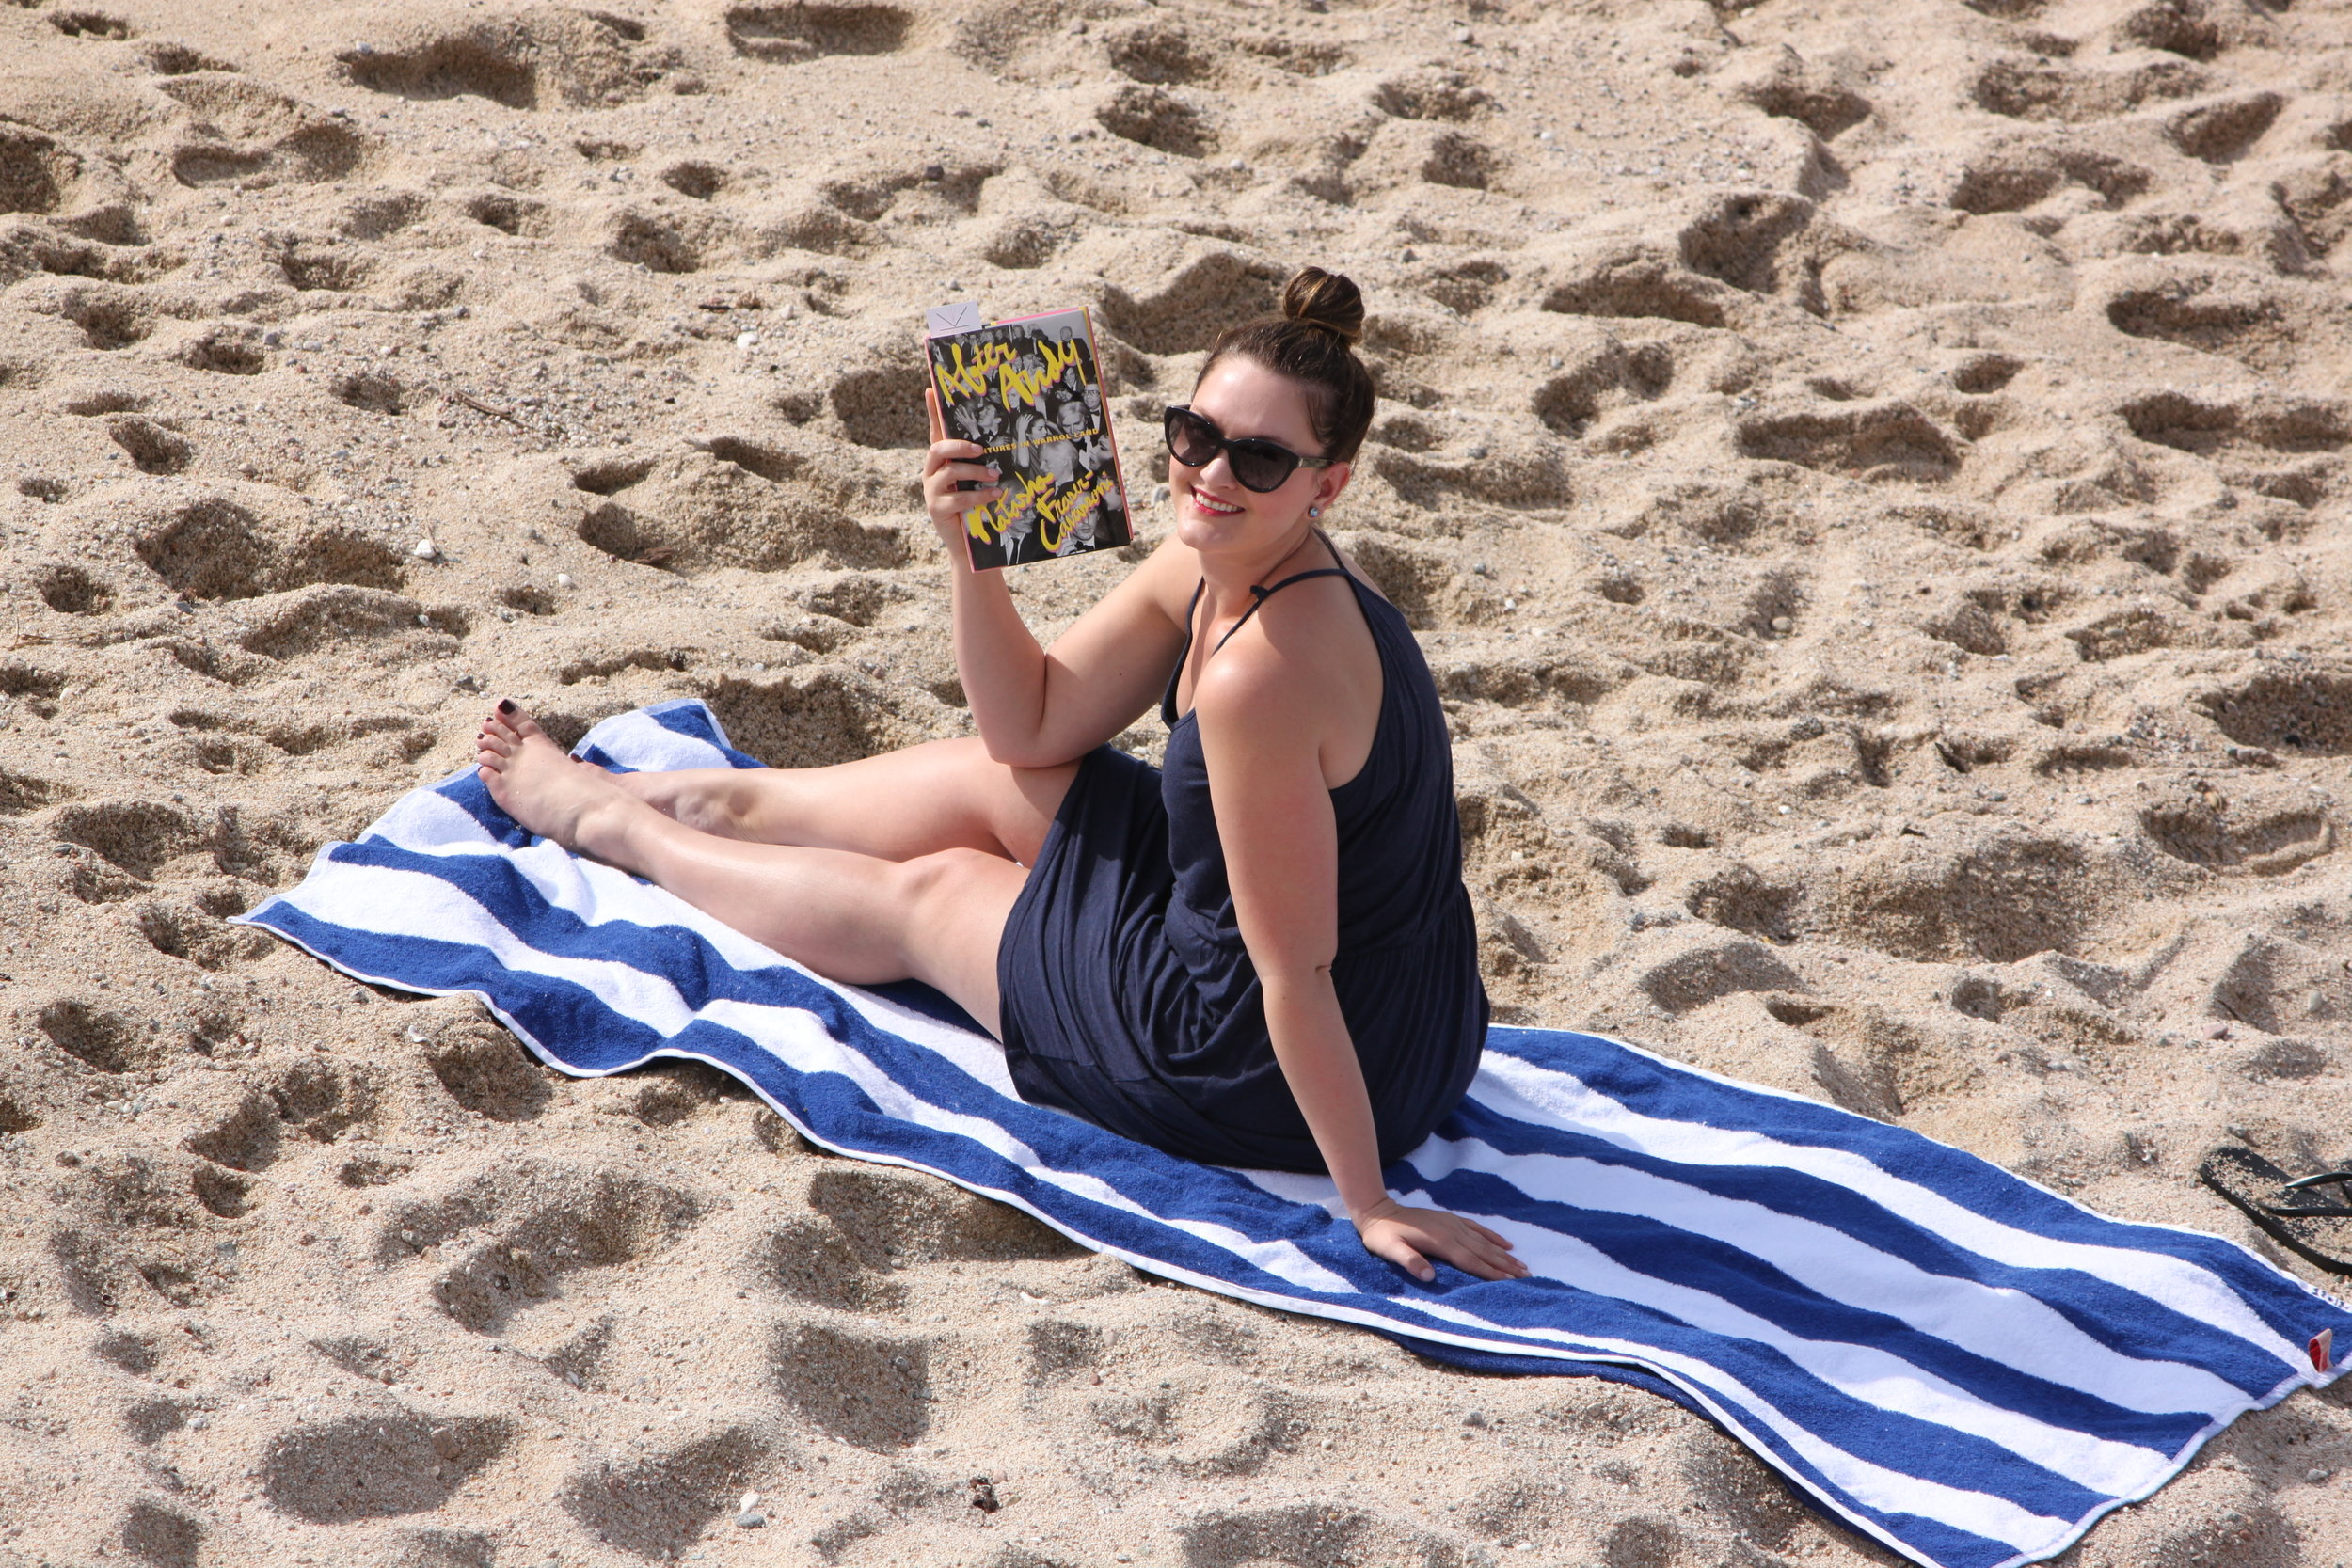 Reading After Andy by Natasha Fraser-Cavassoni at Sirena del Mar in Cabo San Lucas, Mexico